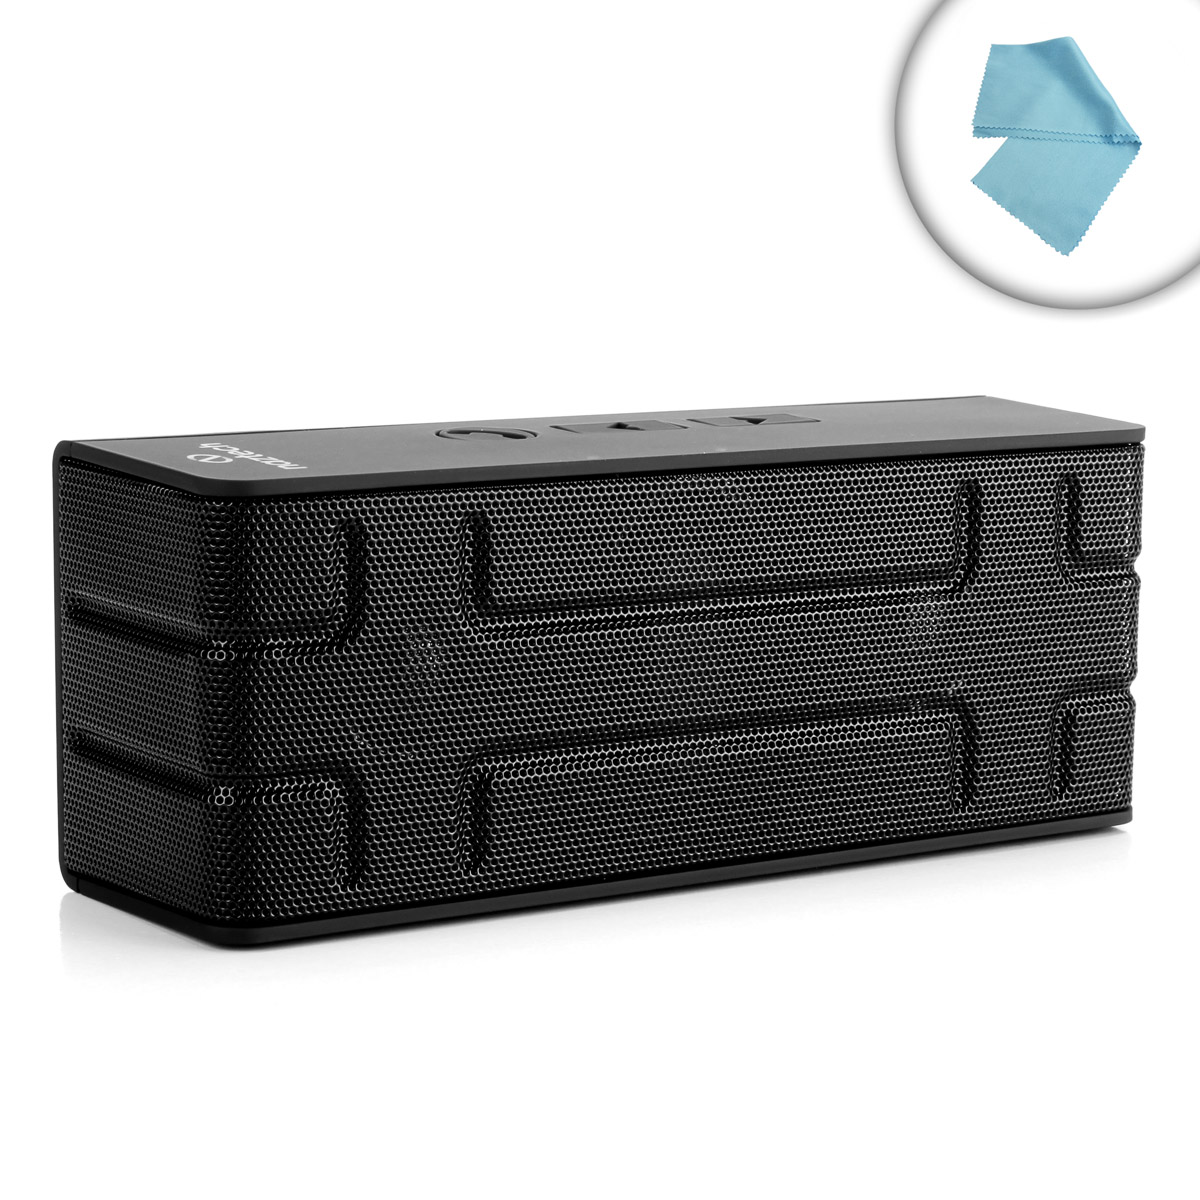 Portable Charger Generator Portable Bluetooth Speaker Homemade Net Playz 12x6 Portable Soccer Goal You Tv Player Pc Portable: Portable Wireless Bluetooth Speaker & Charger W